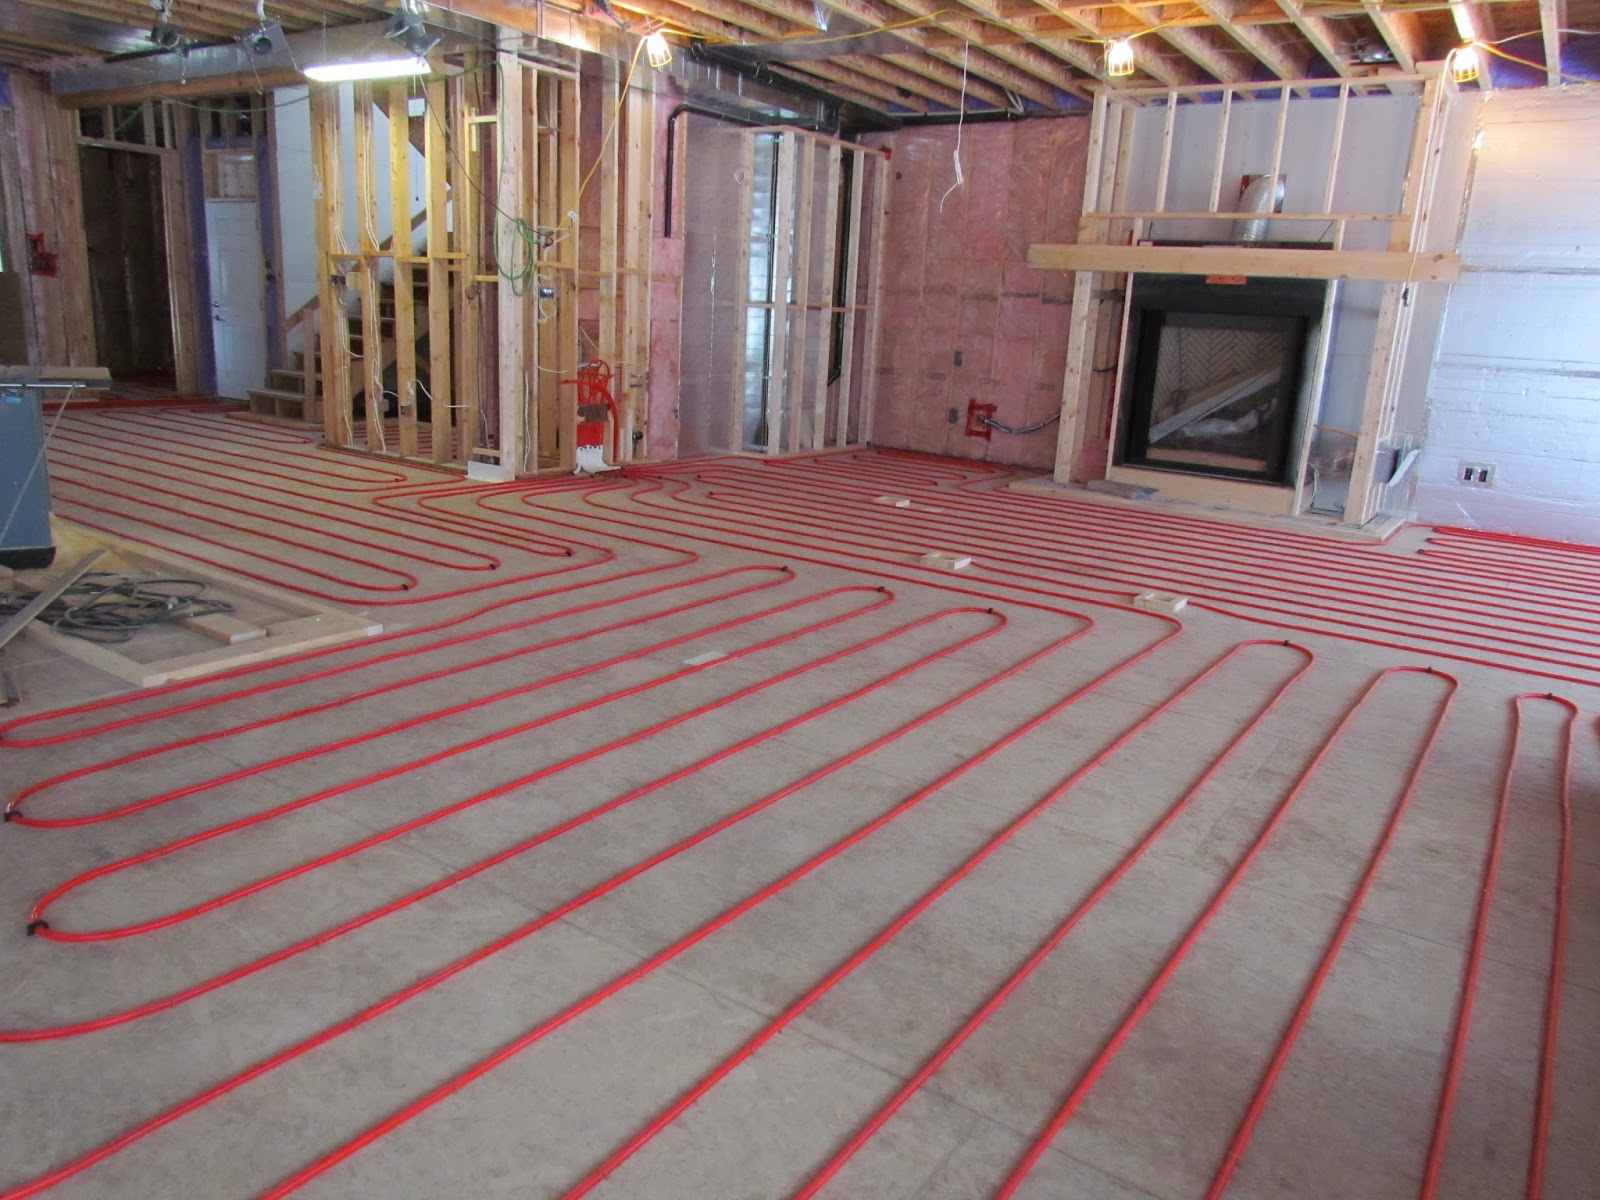 Genial Radiant In Floor Heating In The Basement